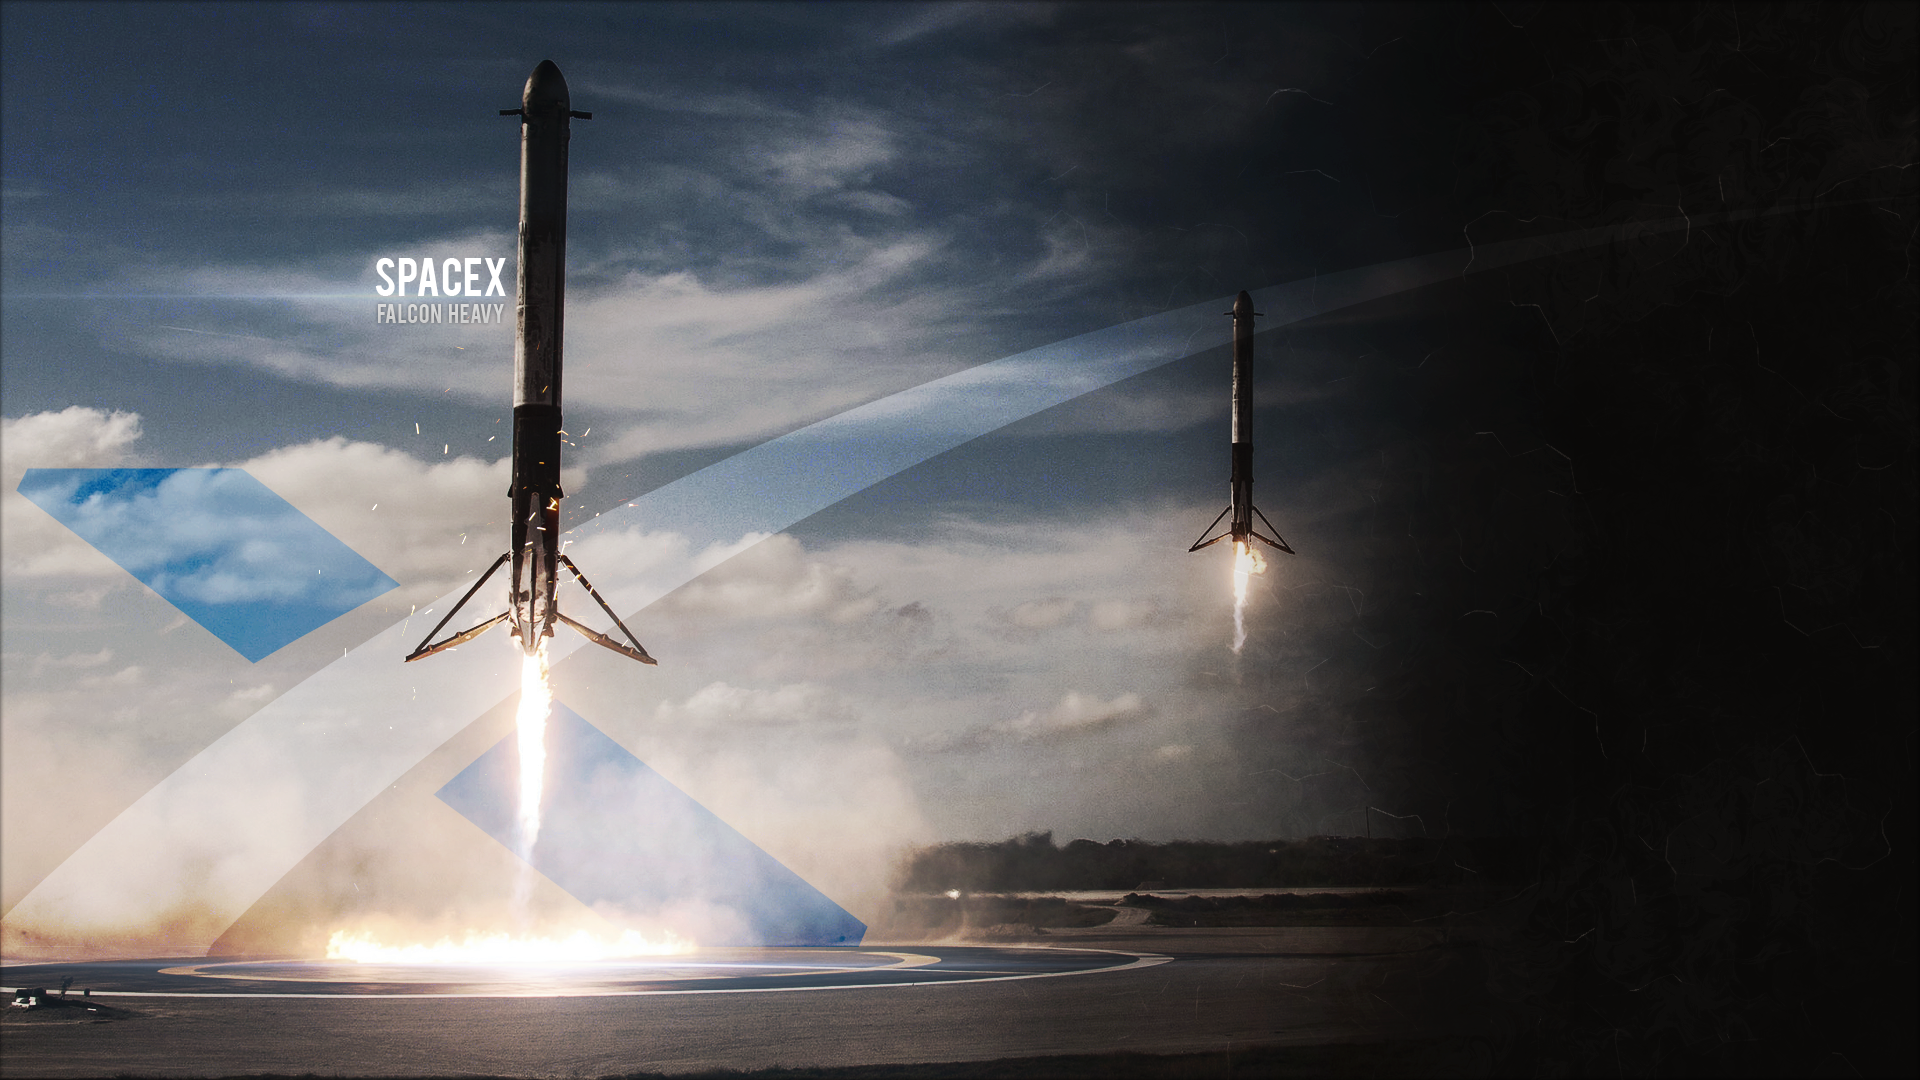 Wallpaper I Made Of The Falcon Heavy Side Boosters Landing 1920x1080 Falcon Heavy Spacex Wallpaper